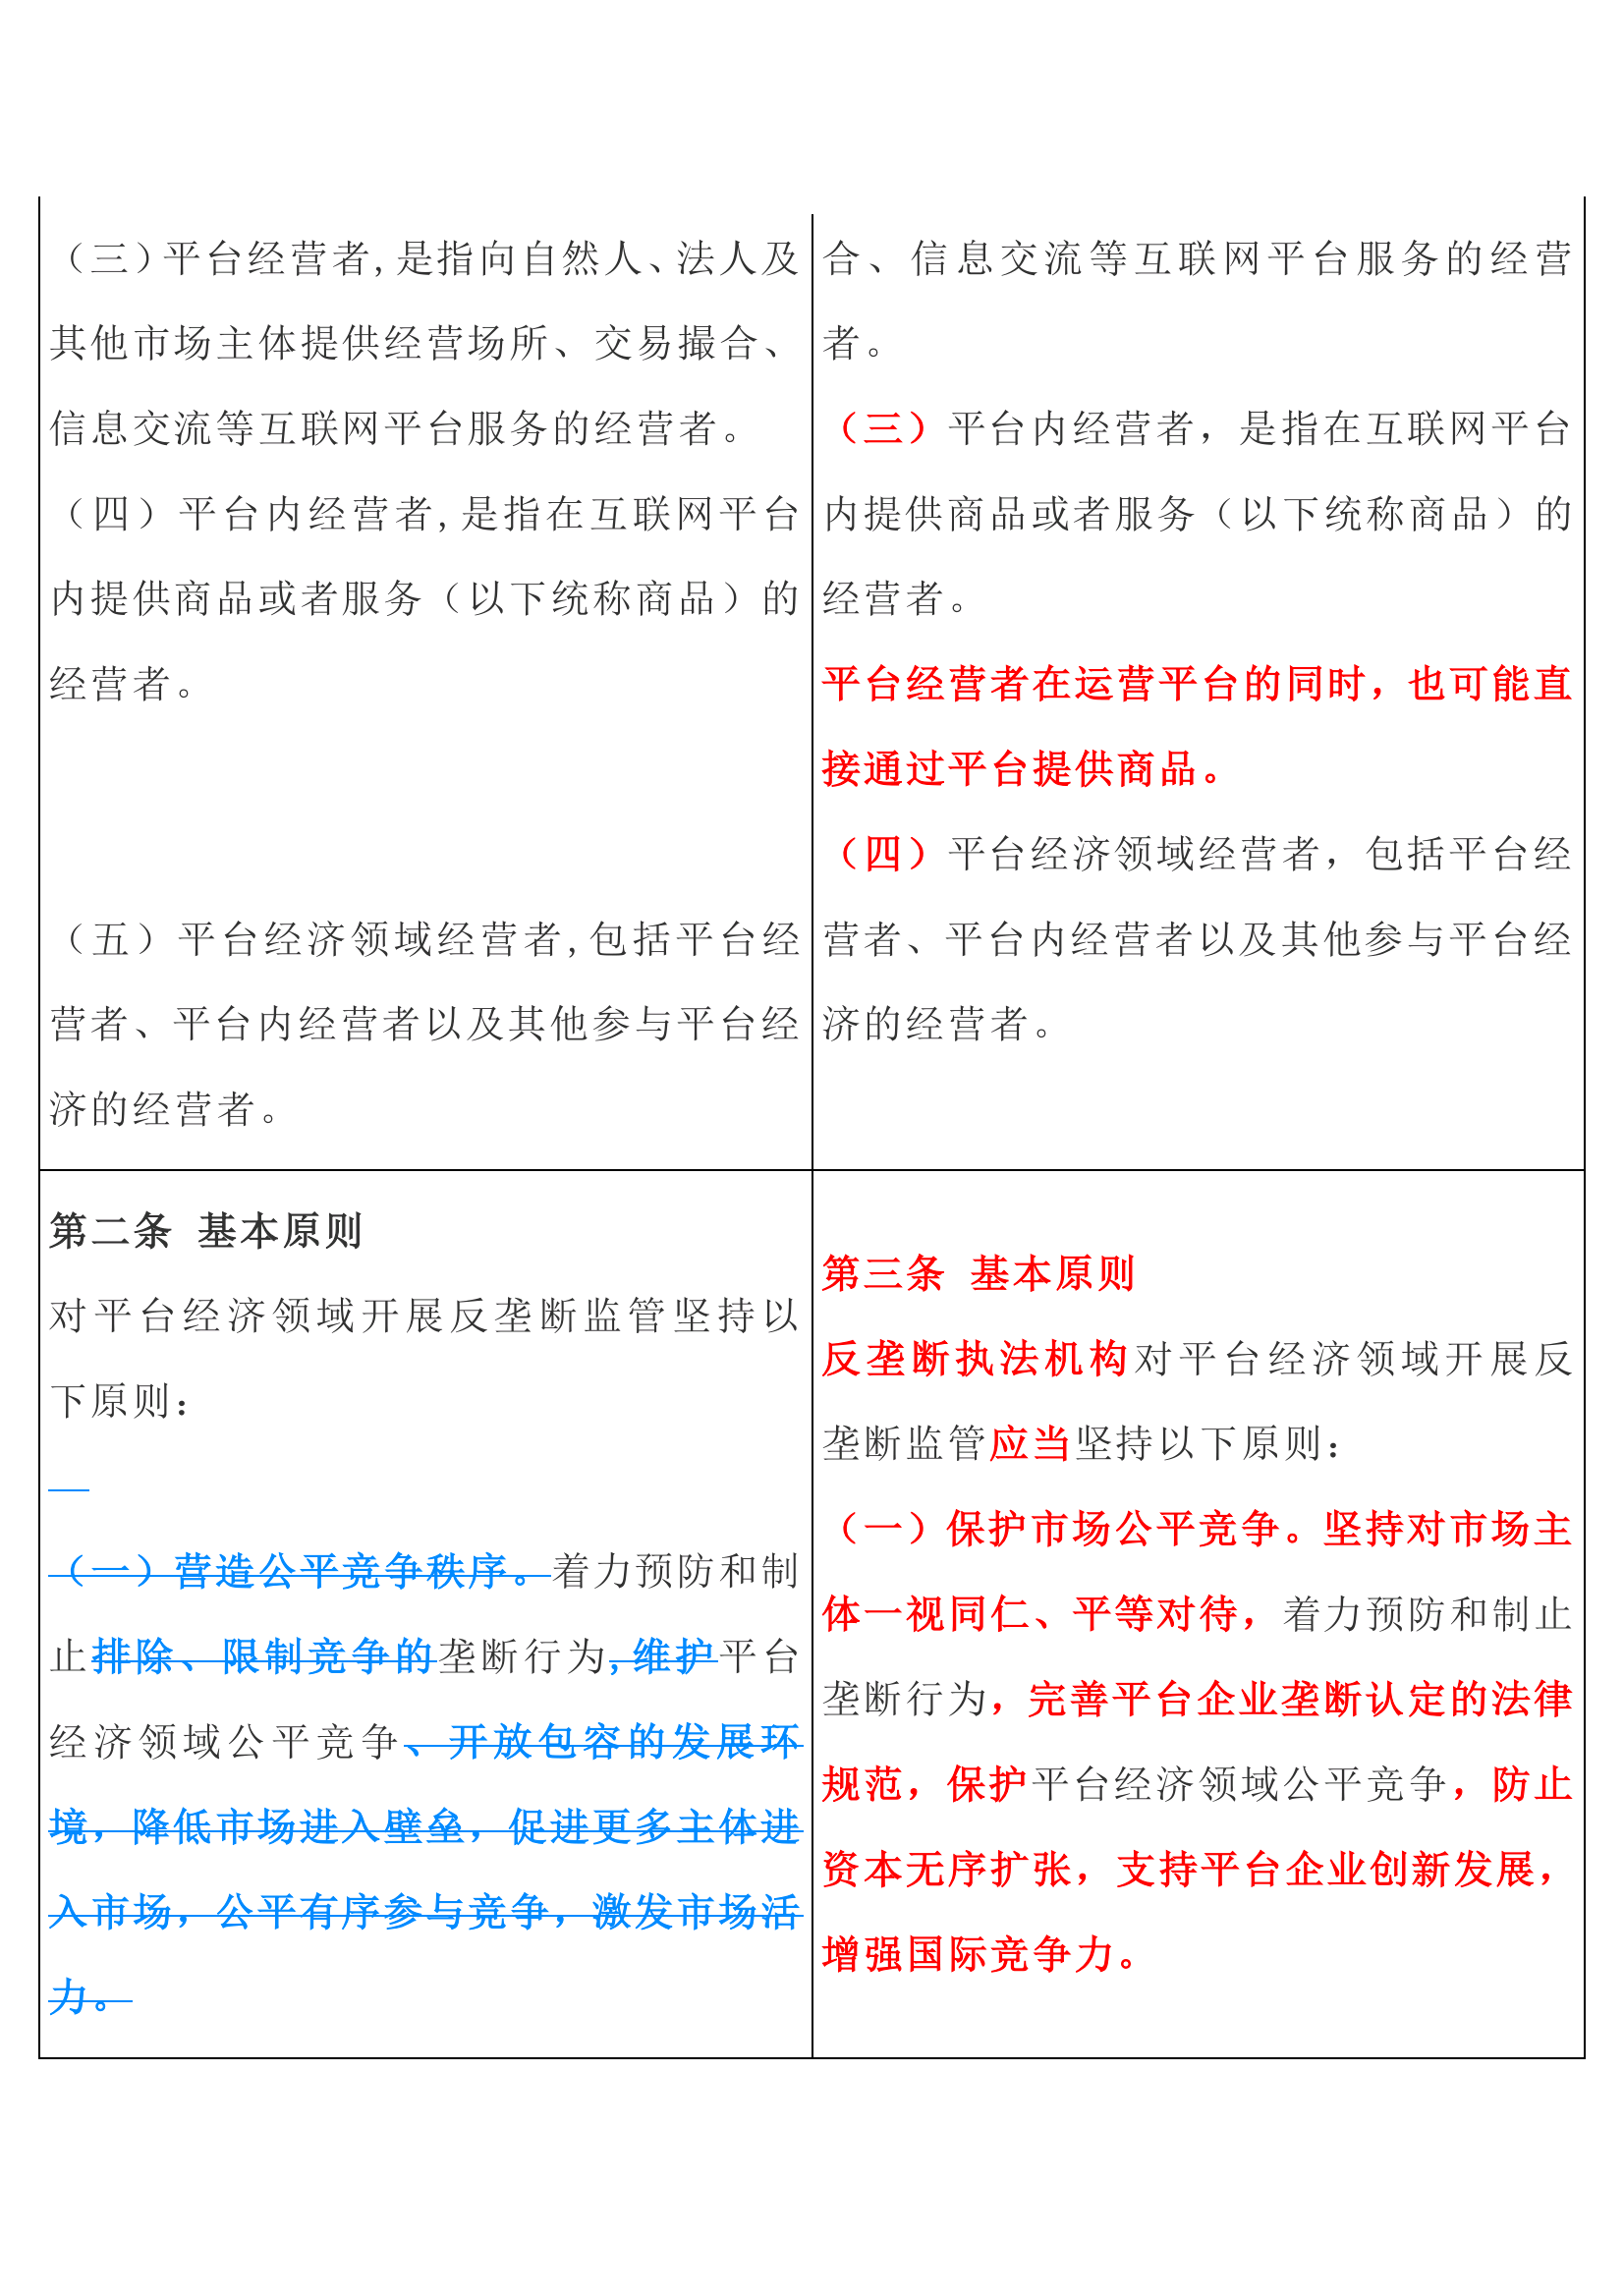 share_pdf_exportpage3(2).png